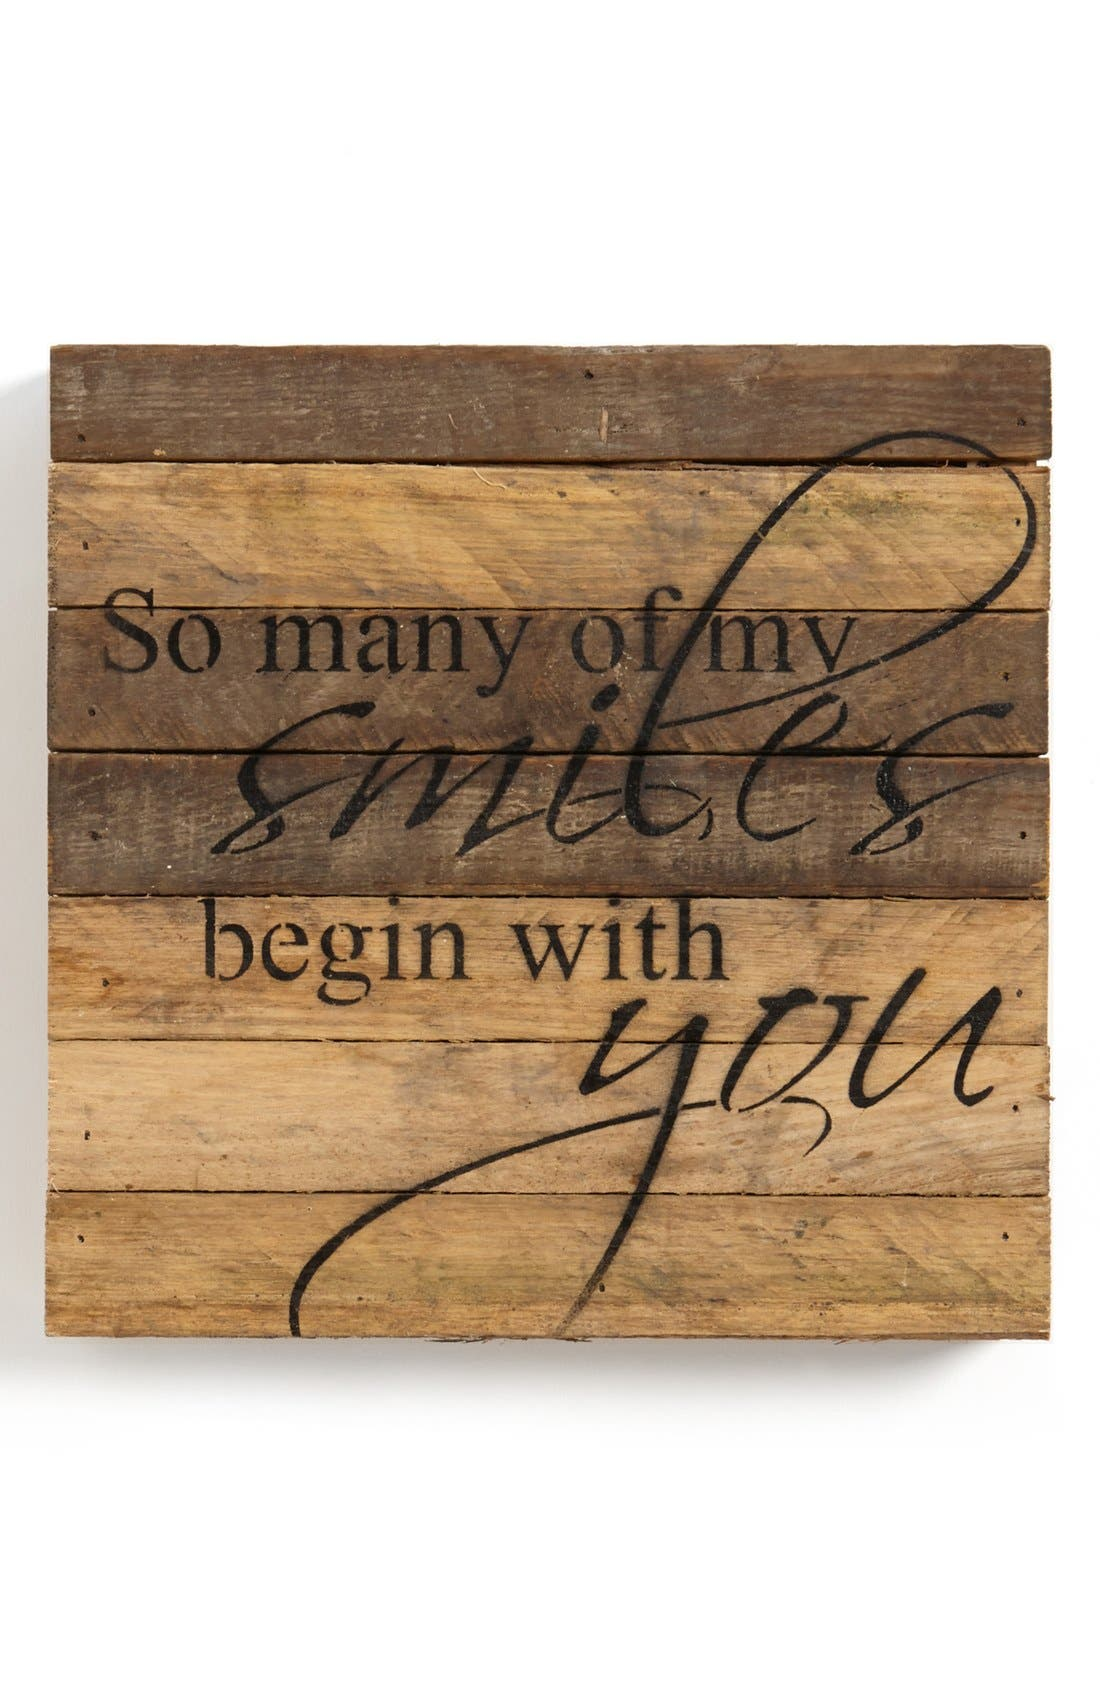 Alternate Image 1 Selected - Second Nature By Hand 'My Smiles Begin with You' Repurposed Wood Wall Art